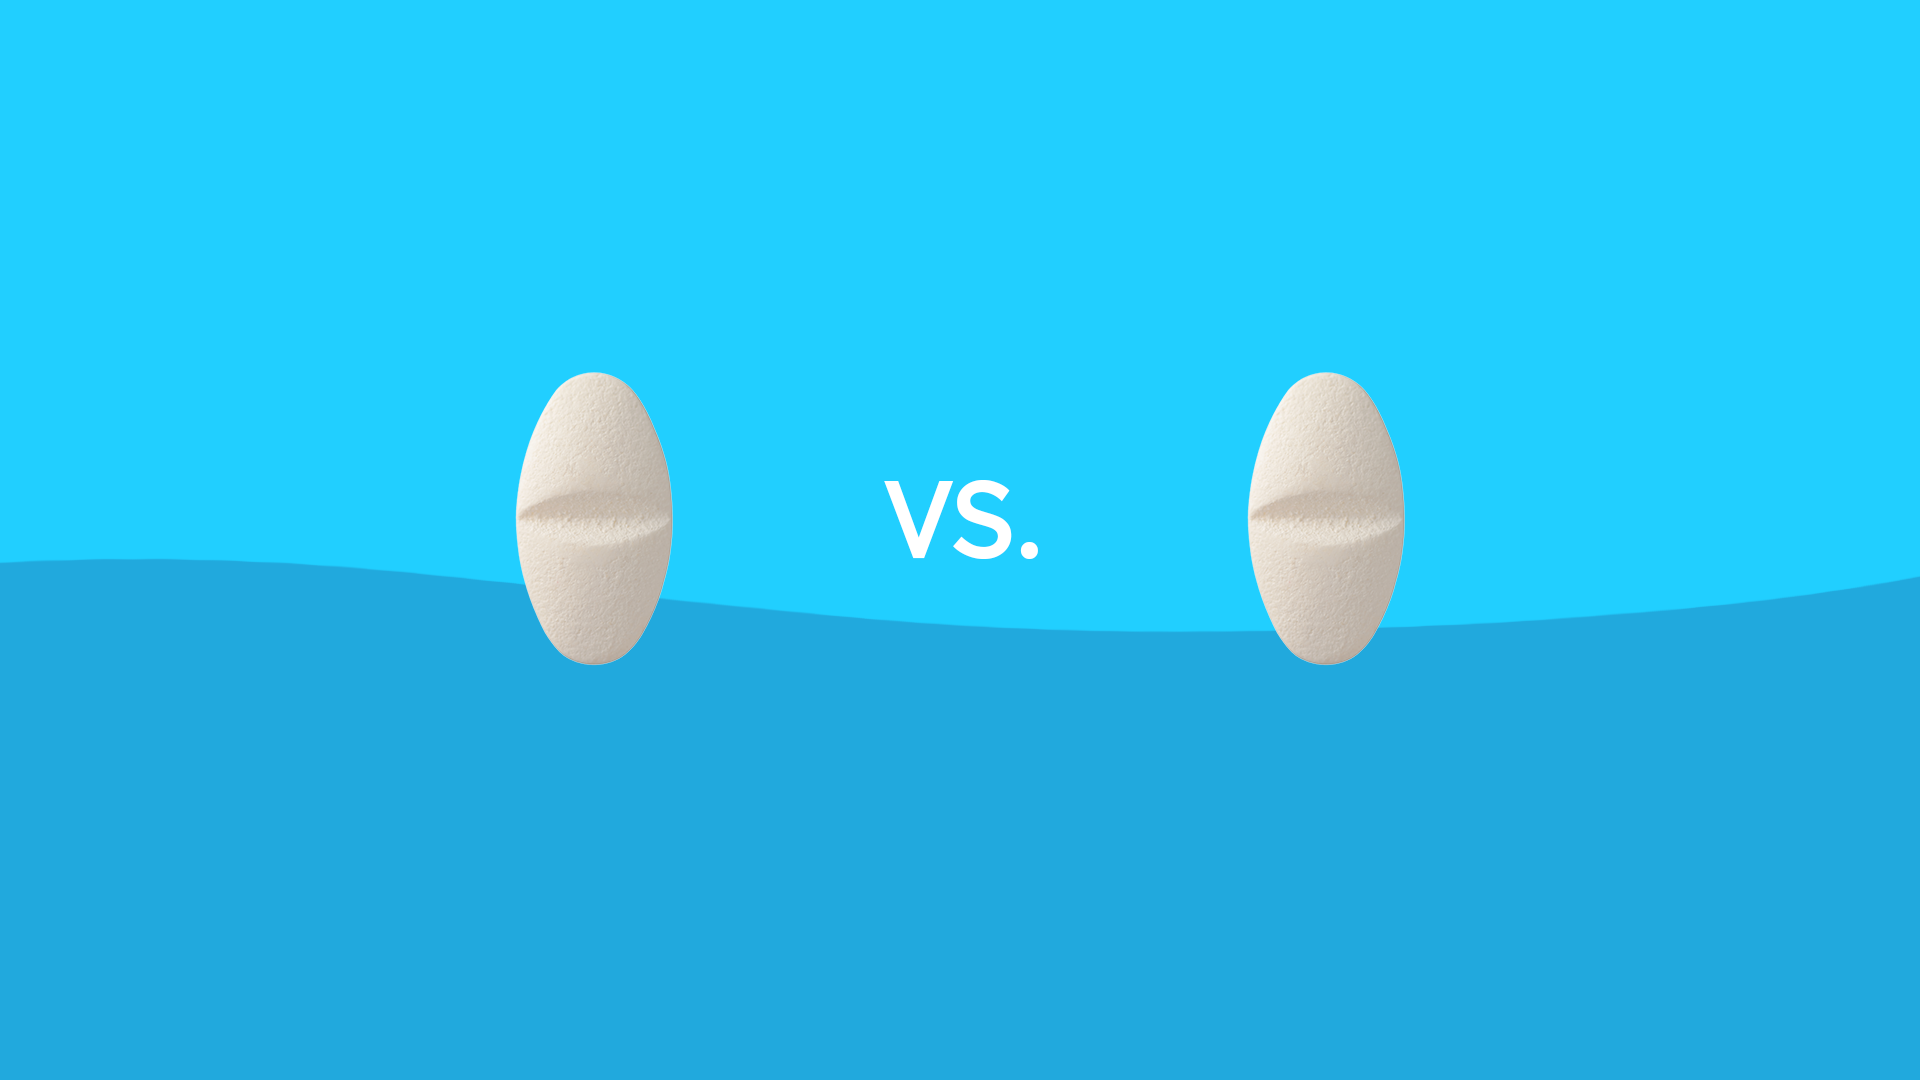 Azithromycin vs. amoxicillin: Differences, similarities, and which is better for you